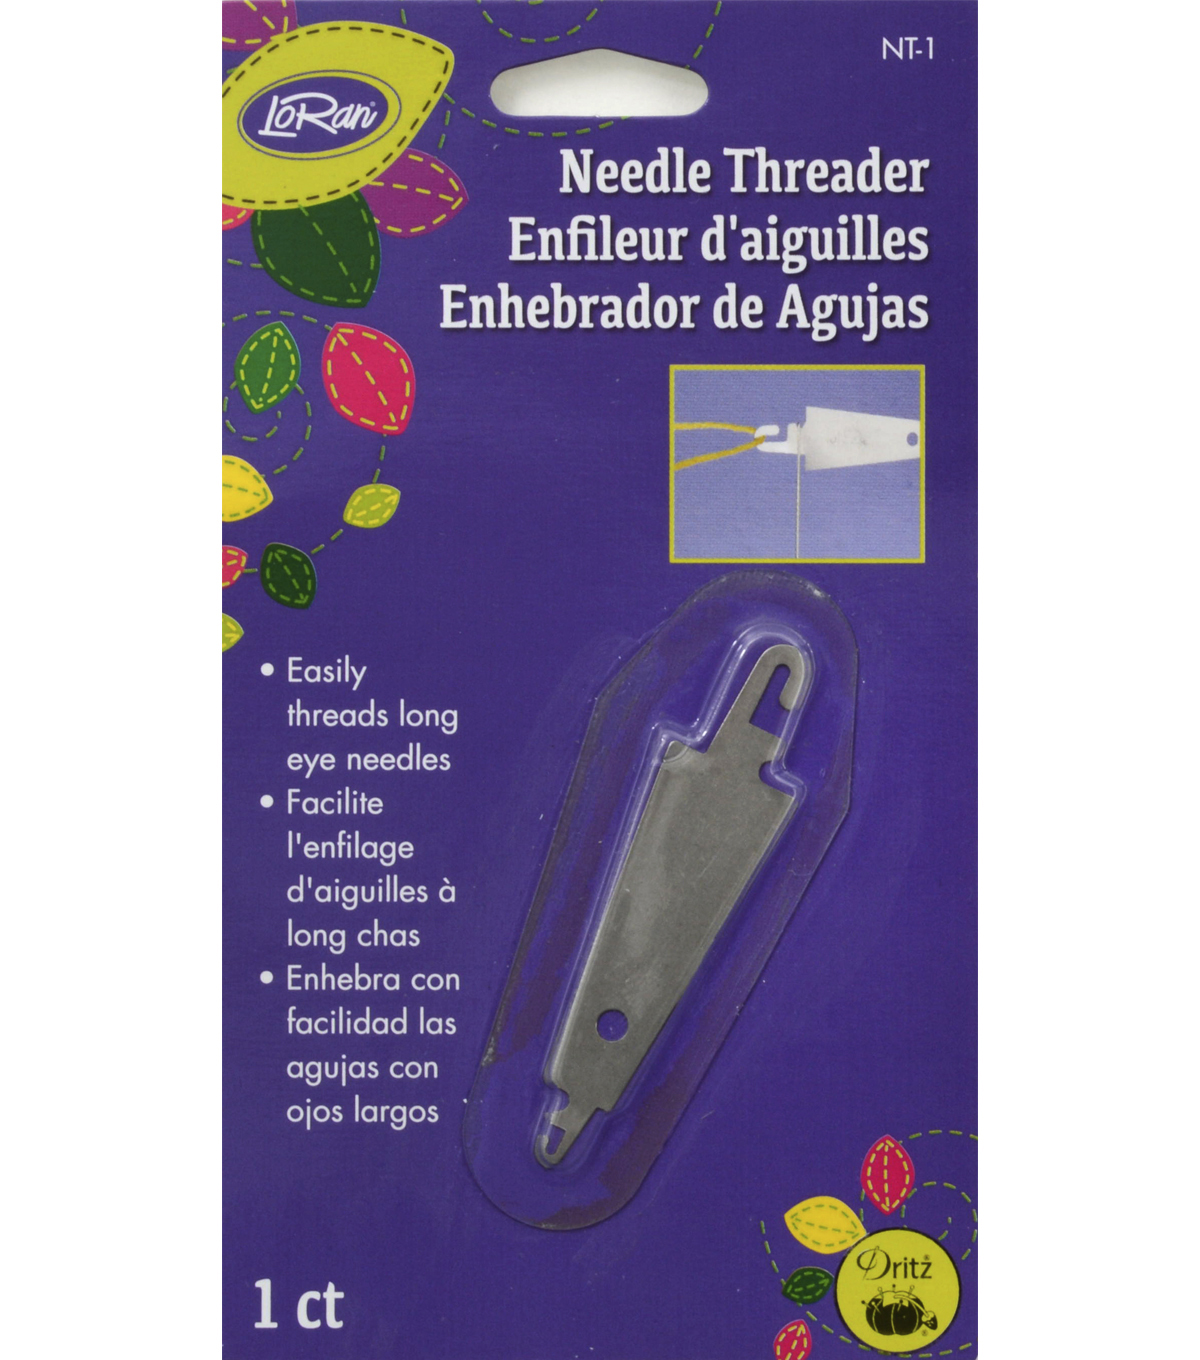 LoRan Needle Threader